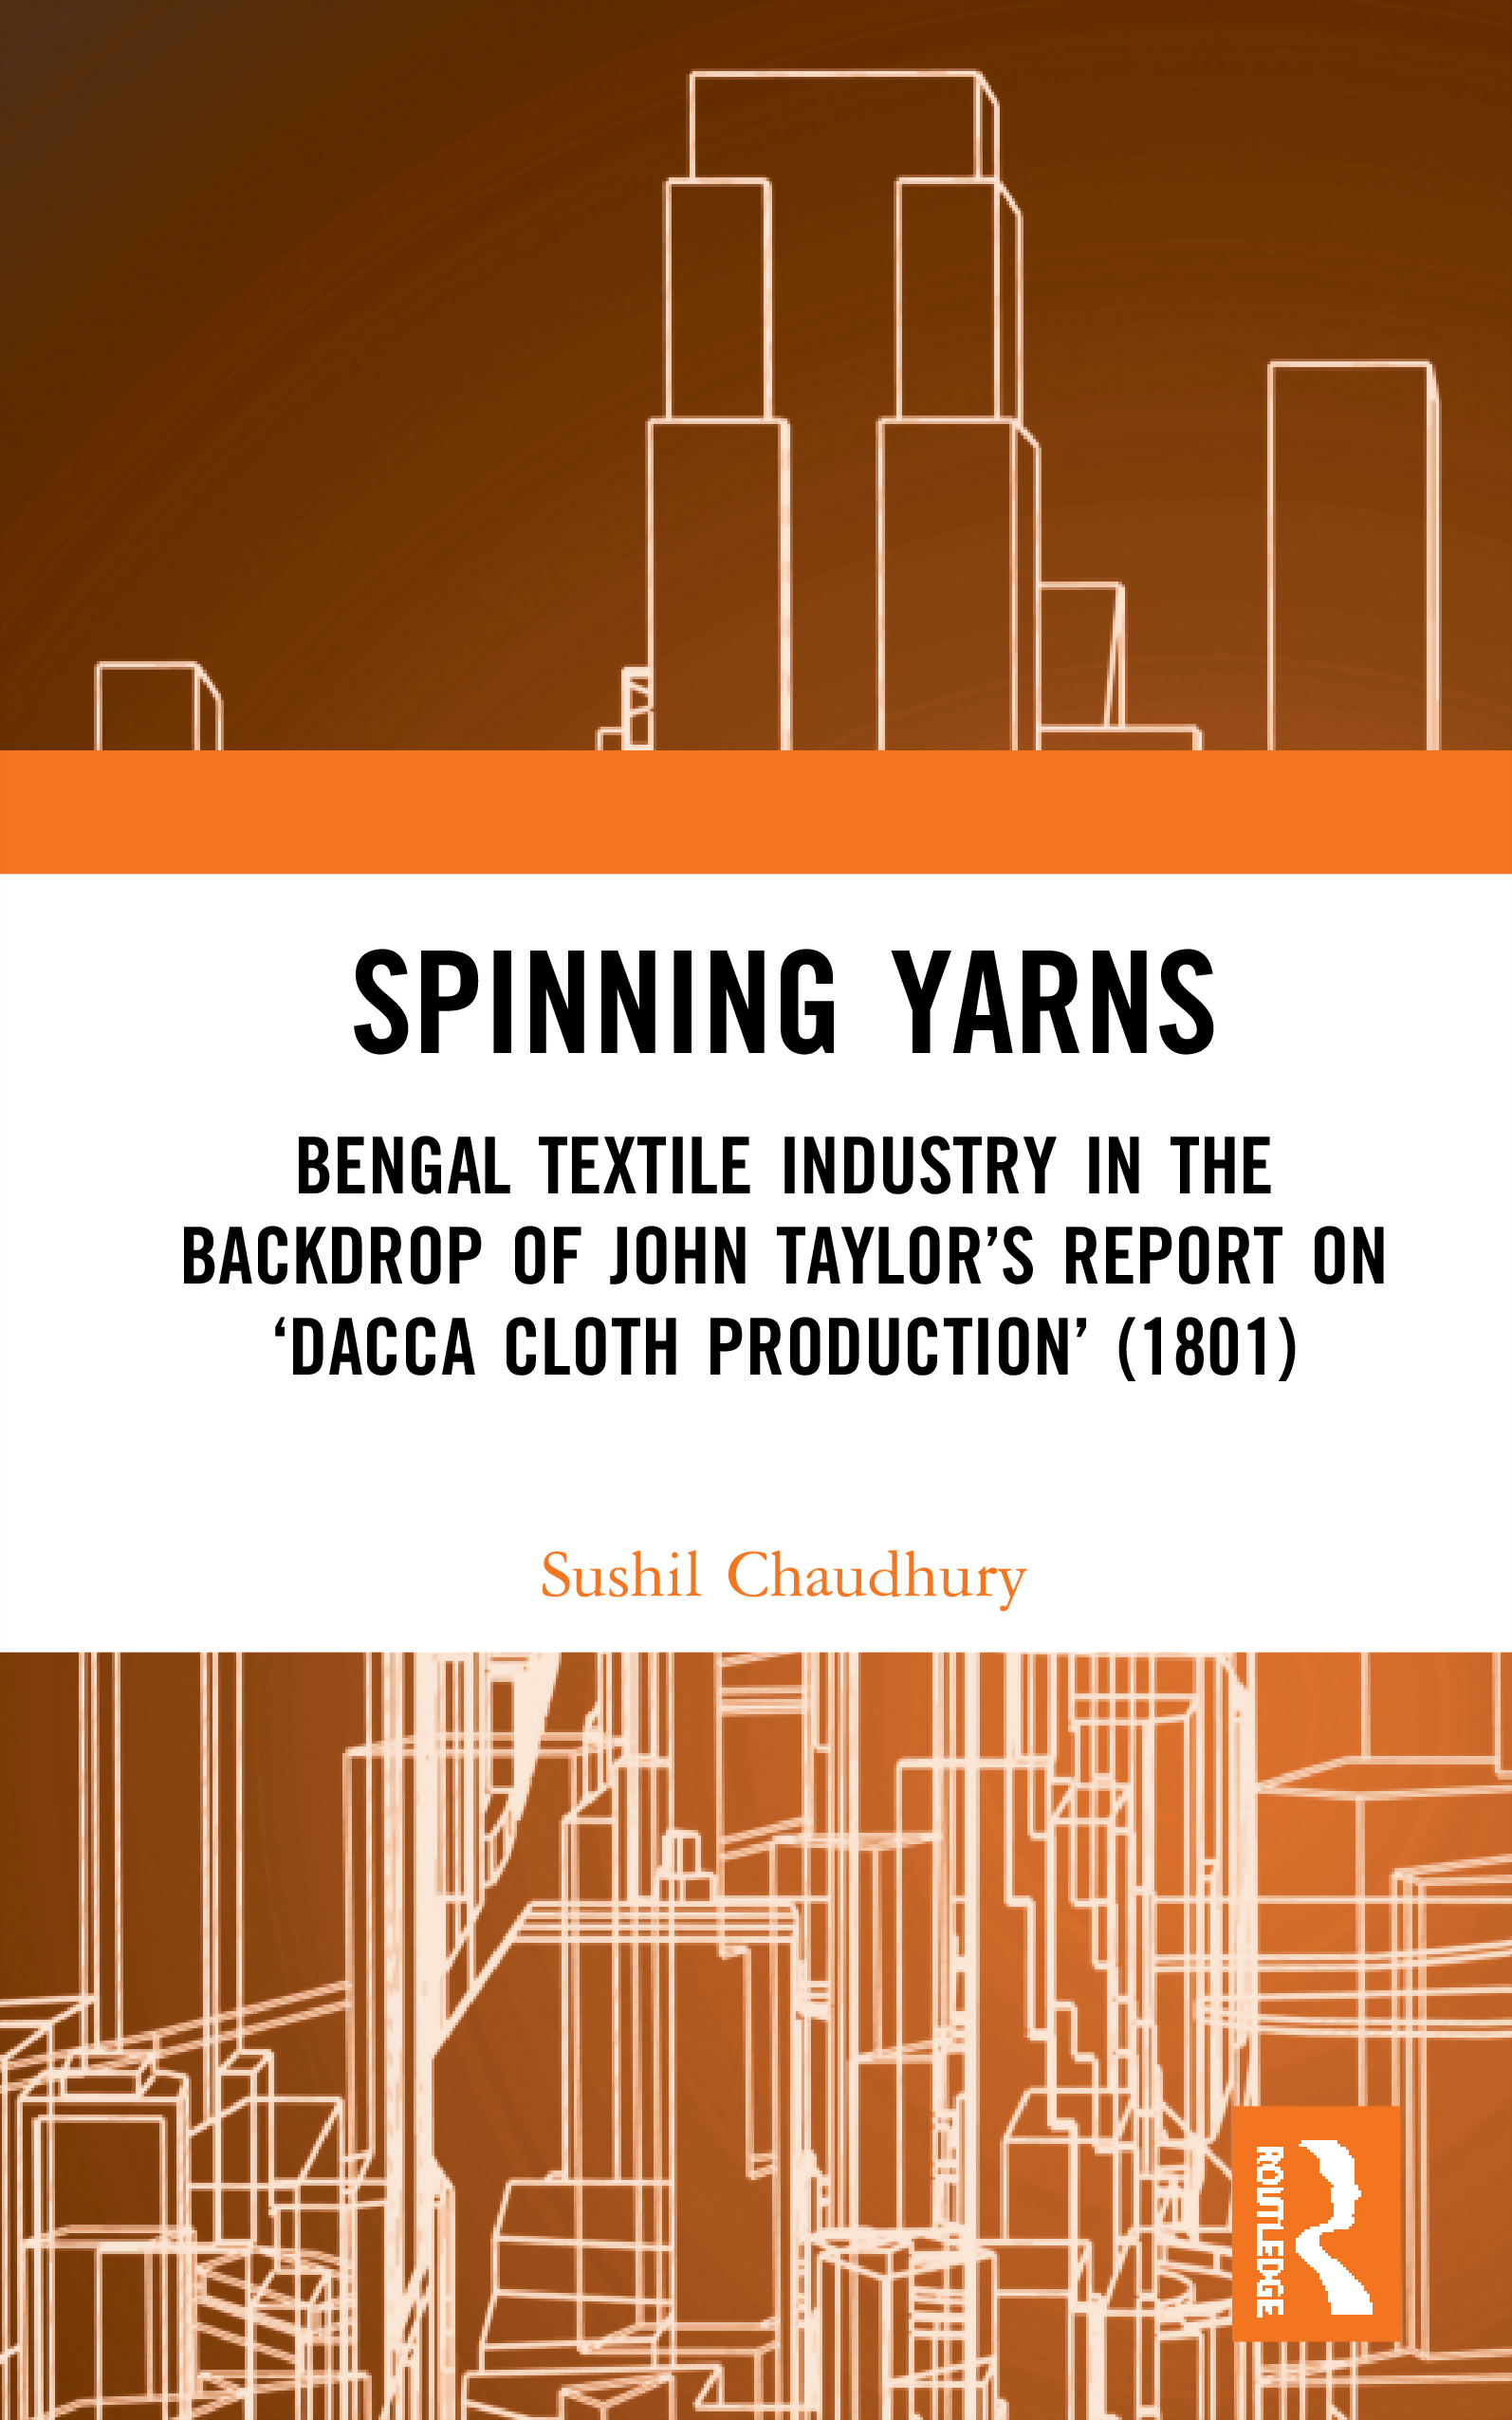 Spinning Yarns: Bengal Textile Industry in the Backdrop of John Taylor's Report on 'Dacca Cloth Production' (1801) book cover